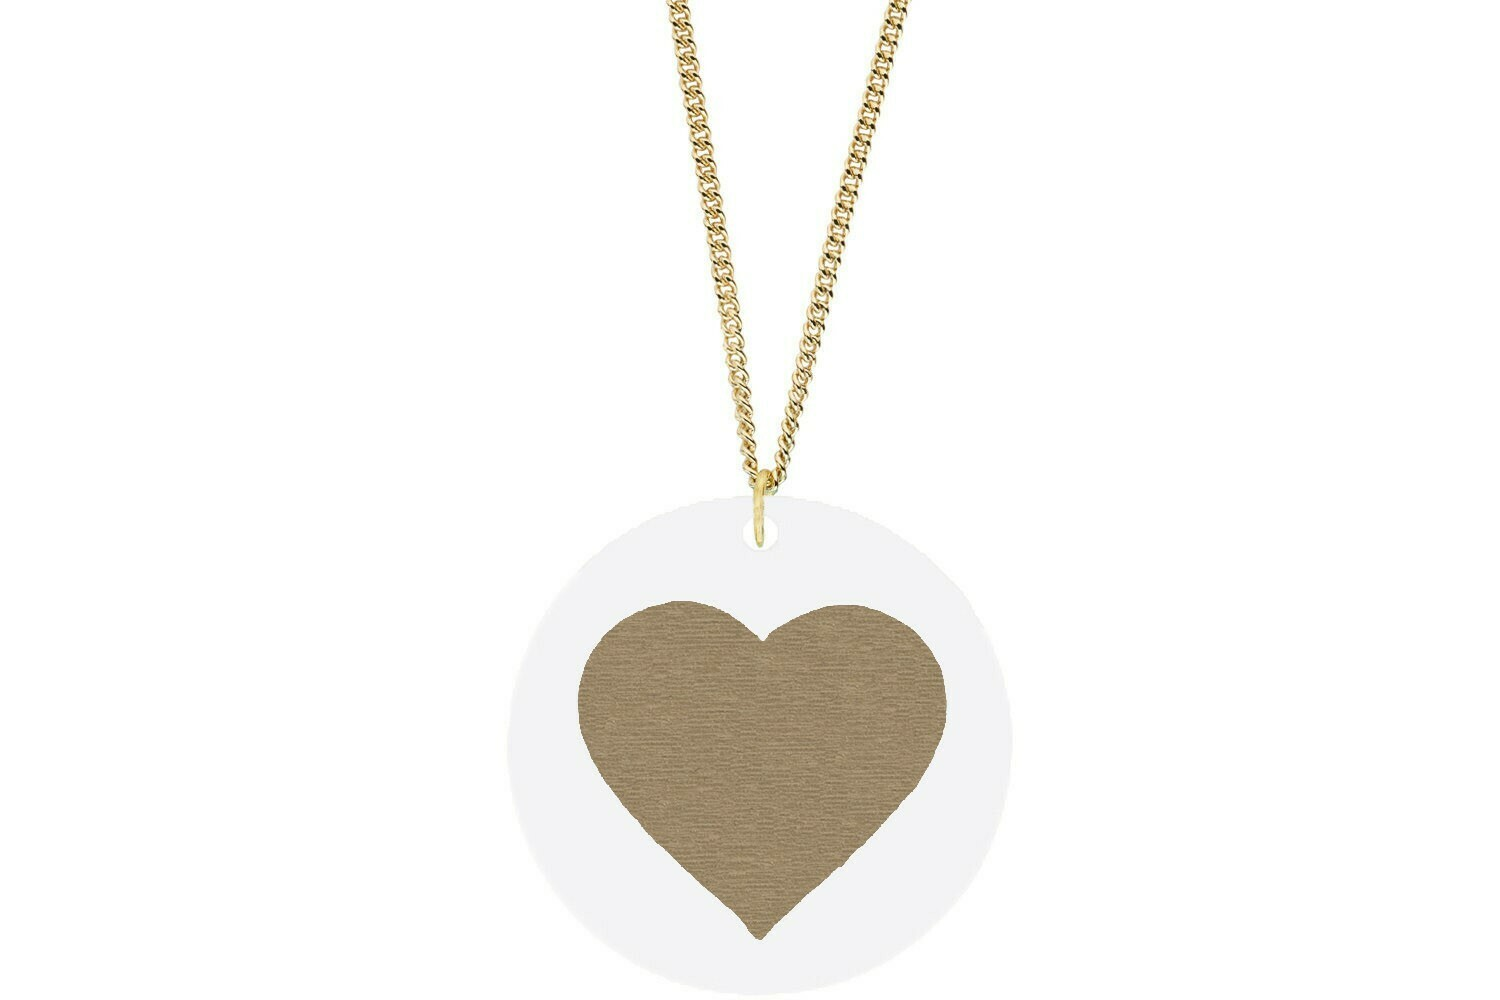 Heart Pendant Subtle Style Refined with Paint on Chain Necklace